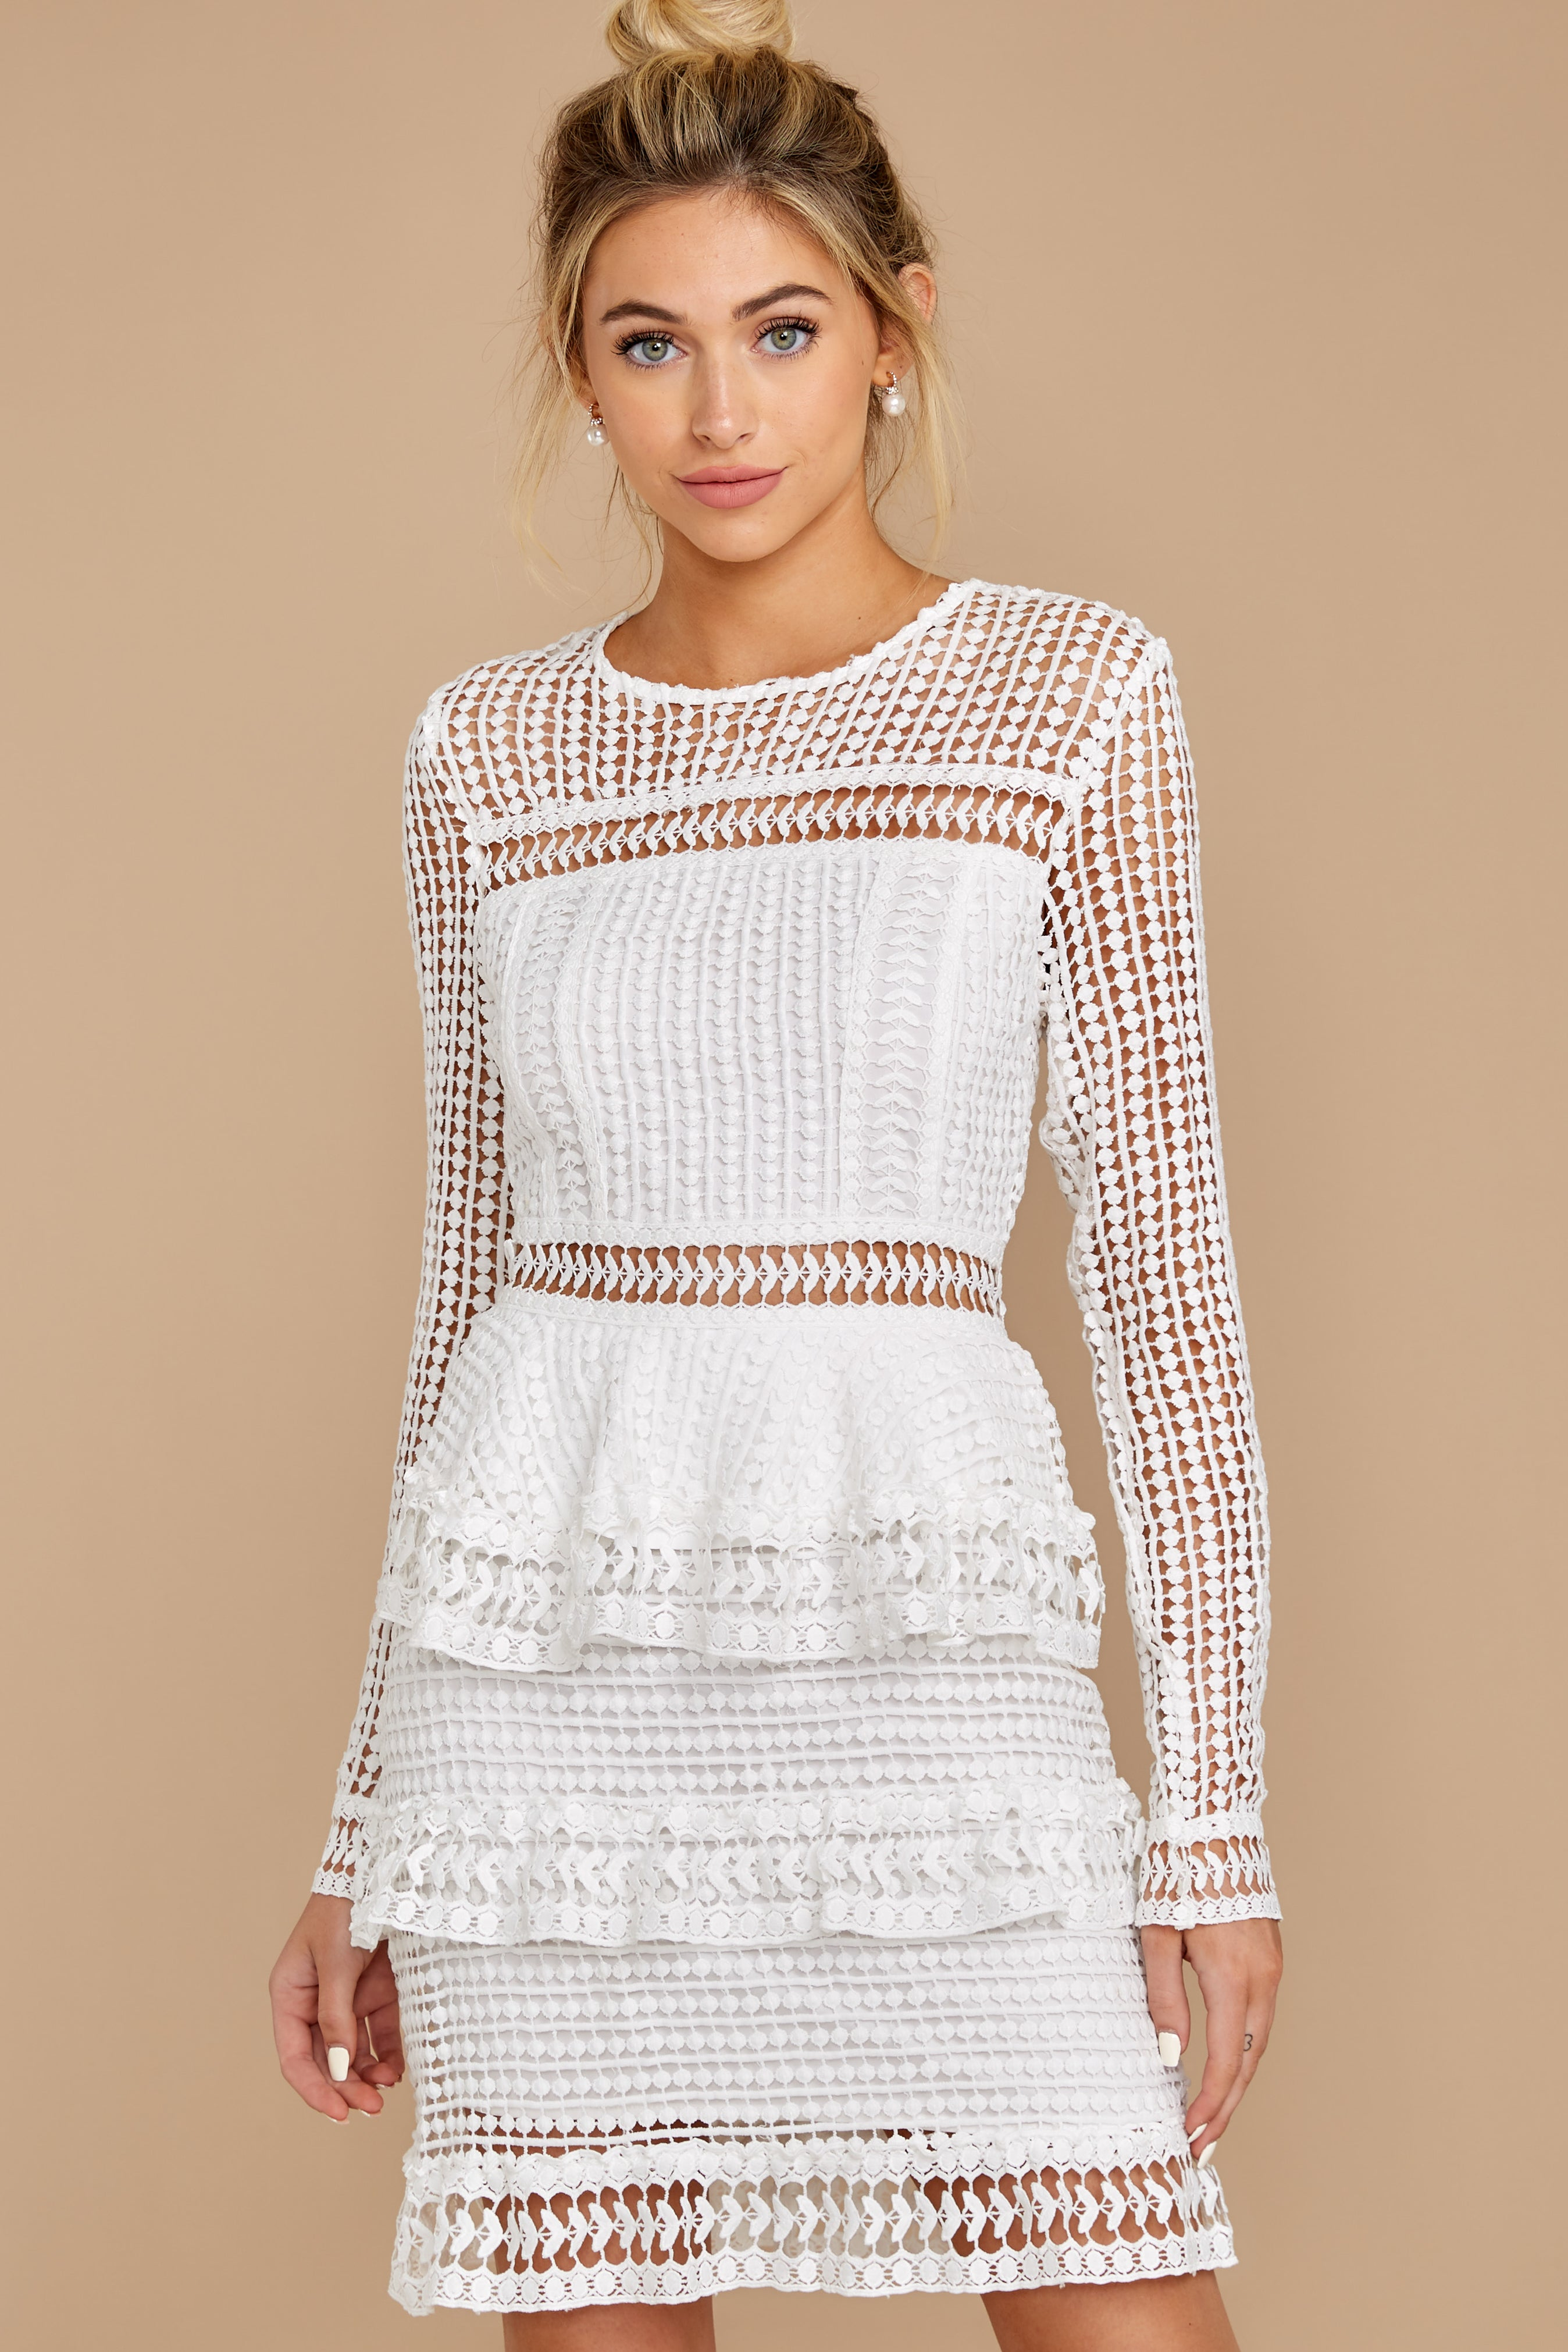 7 Out For Love White Lace Dress at redress.com